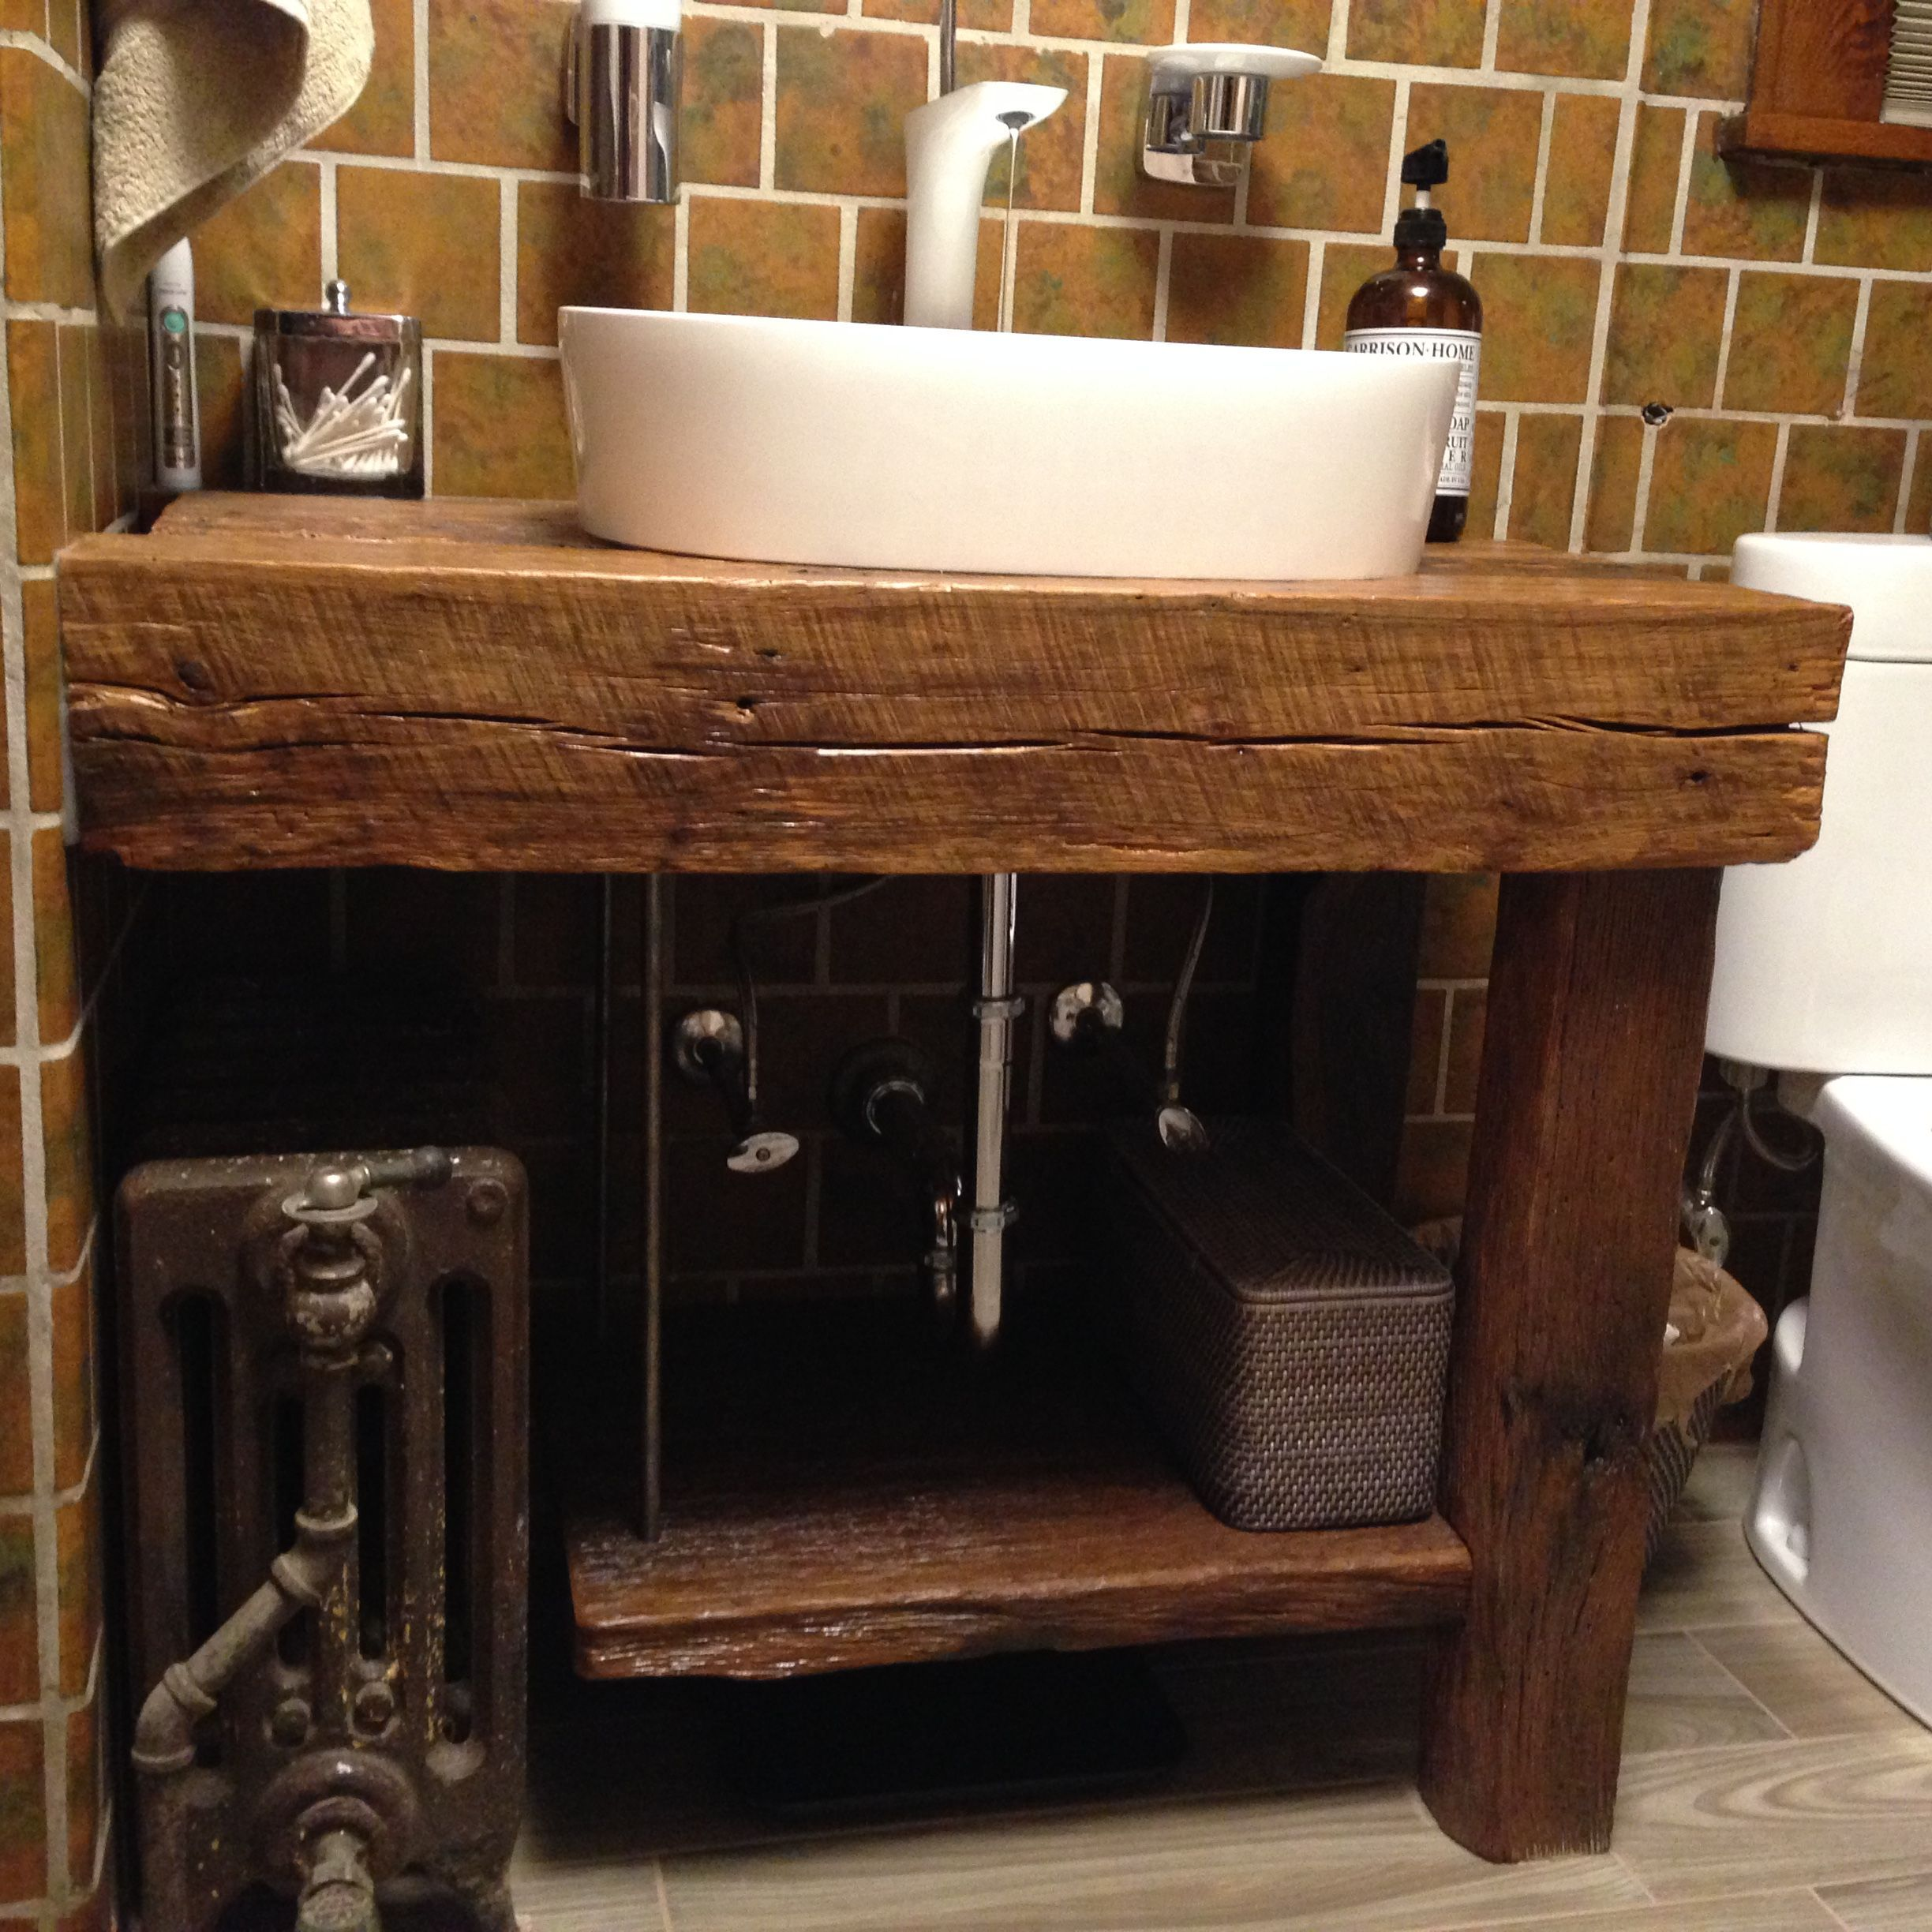 Hand crafted rustic bath vanity reclaimed barnwood by - Corner bathroom vanities for sale ...